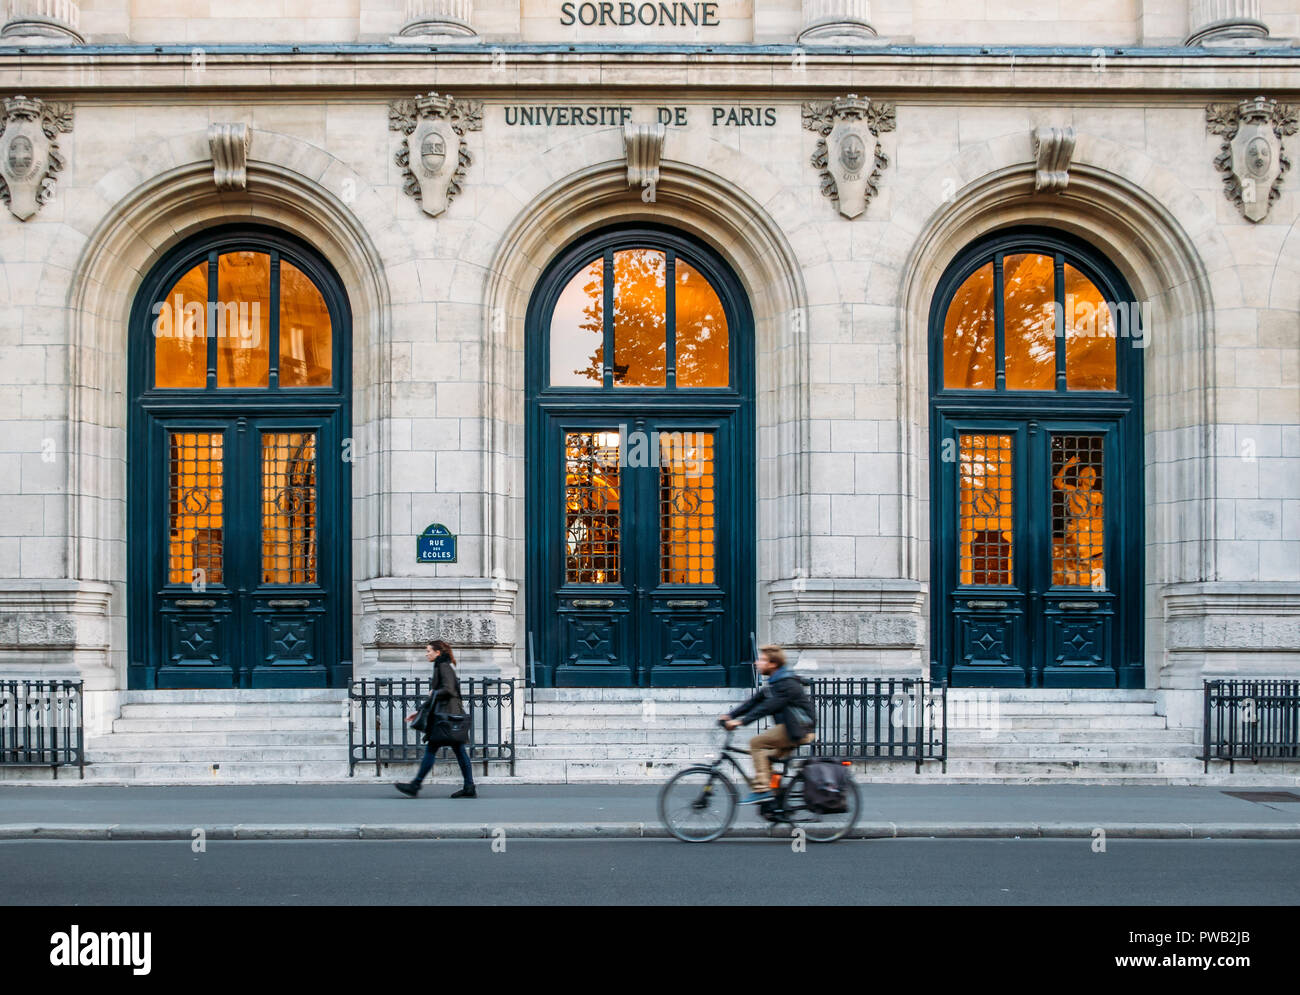 Paris, France - Oct 13, 2018: Pedestrian and cyclist with outside facade of the prestigious University Sorbonne in Paris, France - Stock Image